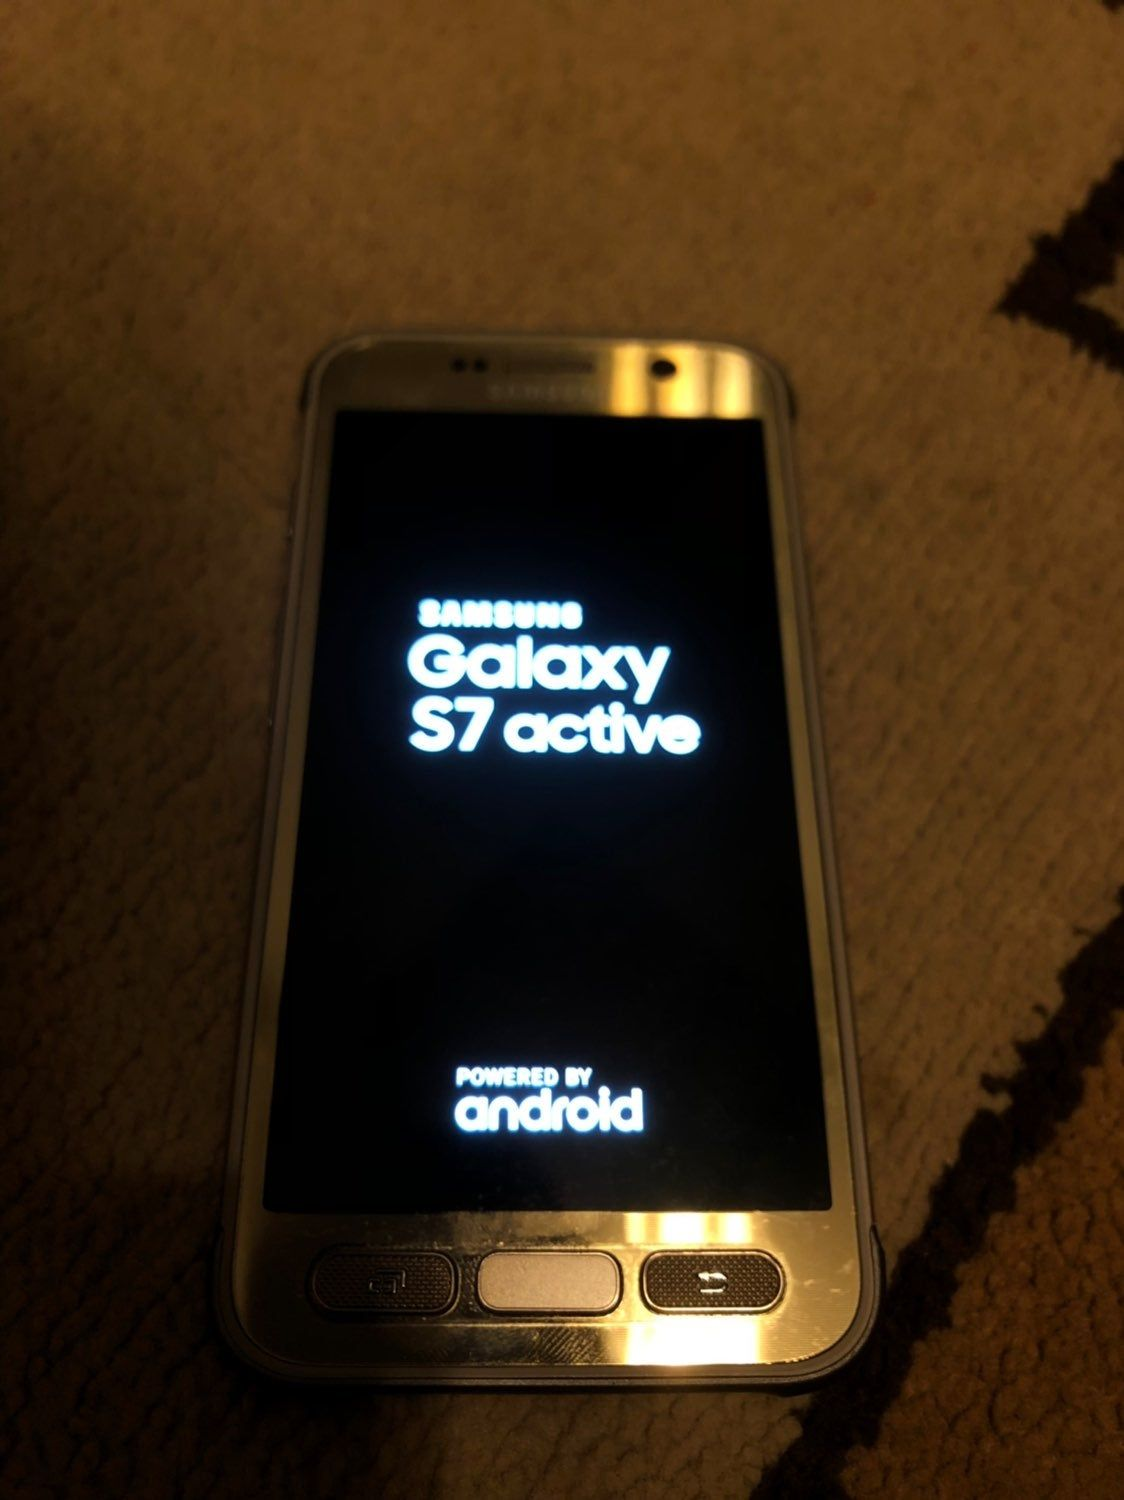 Like New Samsung Galaxy S7 Active It Was Used For A Week Then We Got New Phone And New Cell Provider Great Phone Samsung Galaxy S7 Samsung New Samsung Galaxy